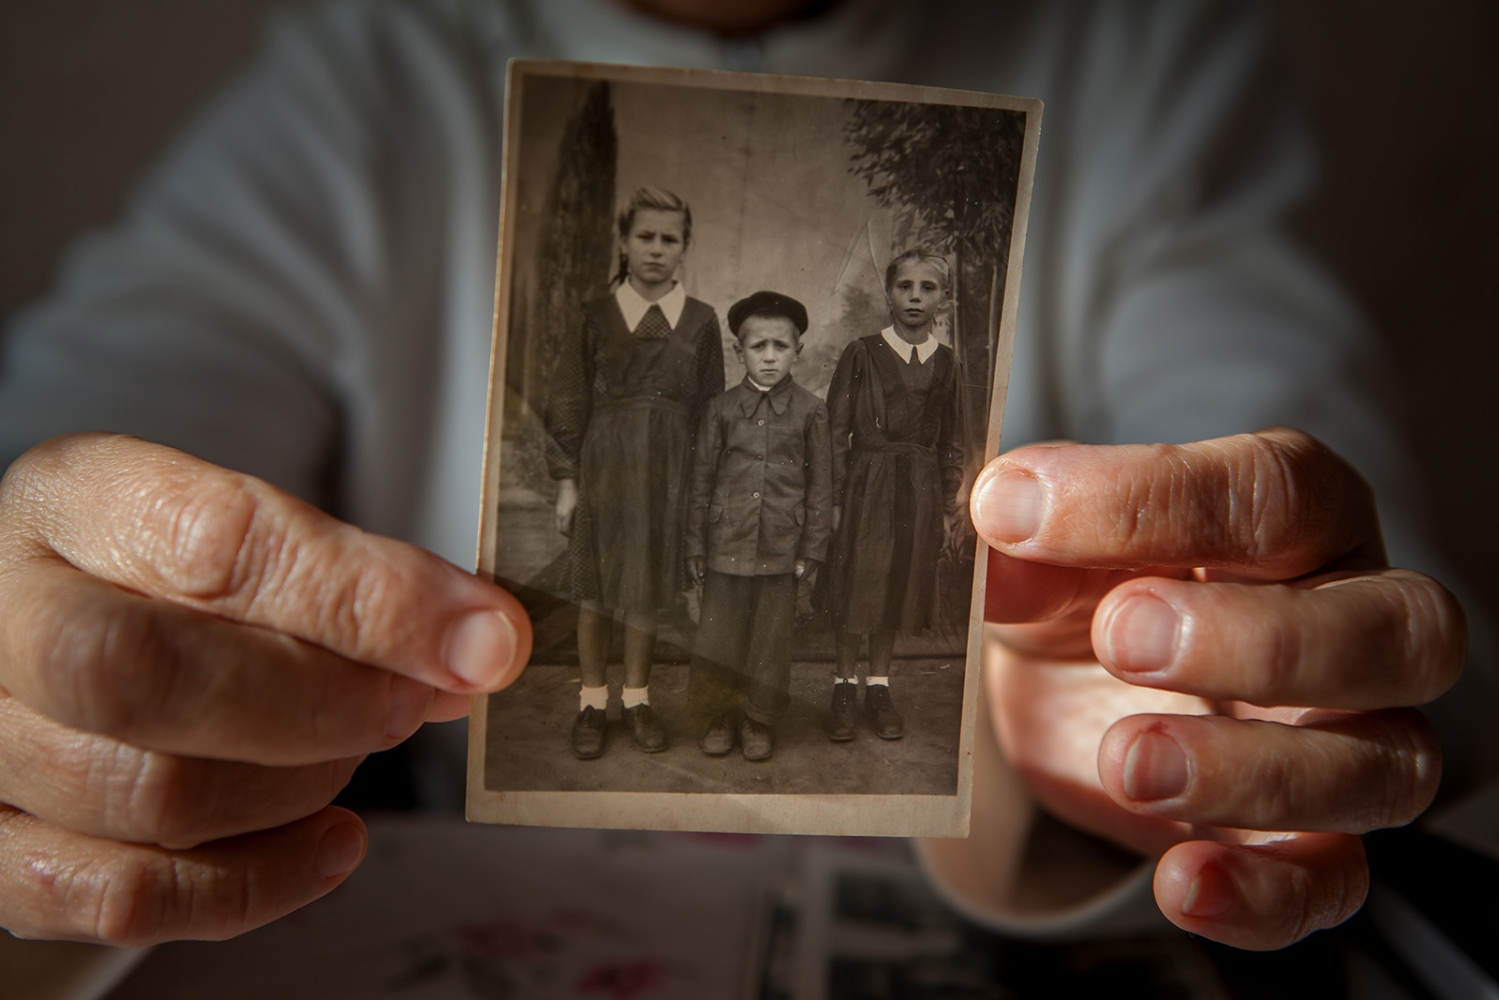 Ion's wife, Nina, who was also a deportee born in Siberia, holds up a photo of Ion and his siblings that was taken in Siberia at the time of his deportation. While Ion and his siblings successfully returned to Moldova, not all of his family was so lucky. Shortly before their return a younger brother of theirs died due to the extreme cold of Siberia and frailty of body that was a reality for all deportees at the time. Frequently, deportees talk about the small portions of bread and basic food they were given for their days' work, as well as the small salaries. It was not uncommon for deportees to sell precious family heirlooms for a bucket of potatoes or the like.